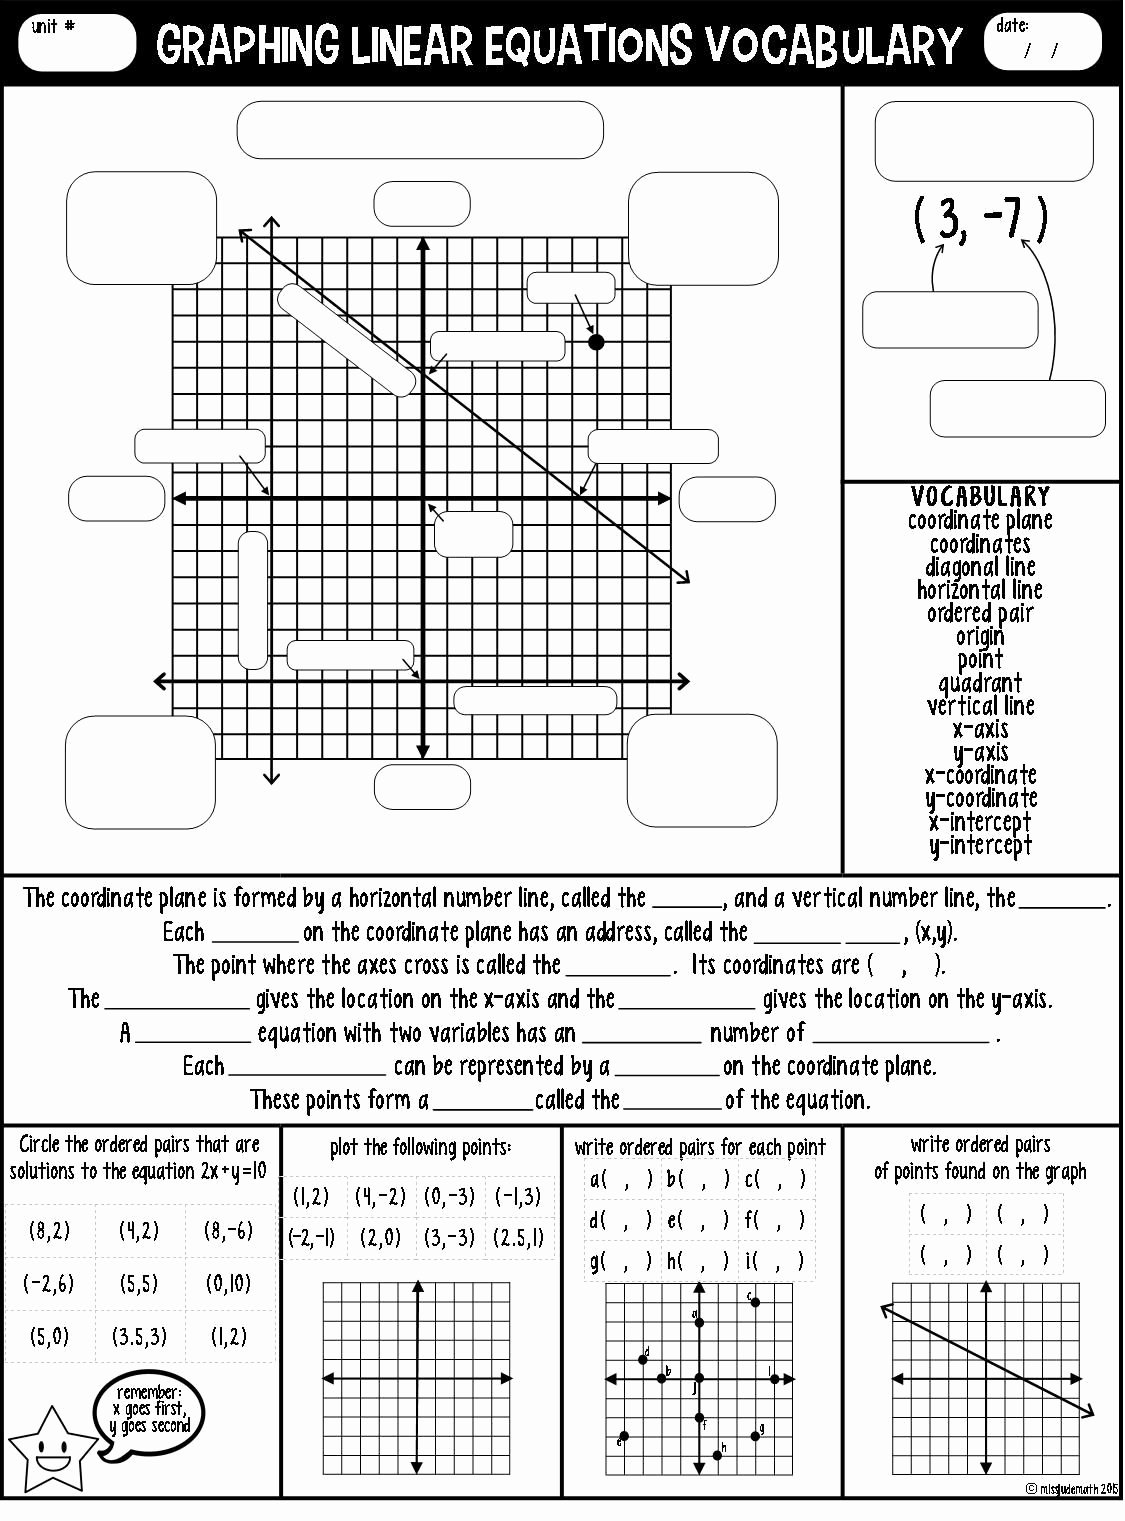 Graphing Linear Functions Worksheet Inspirational Graphing Linear Equations Vocabulary Guided Notes